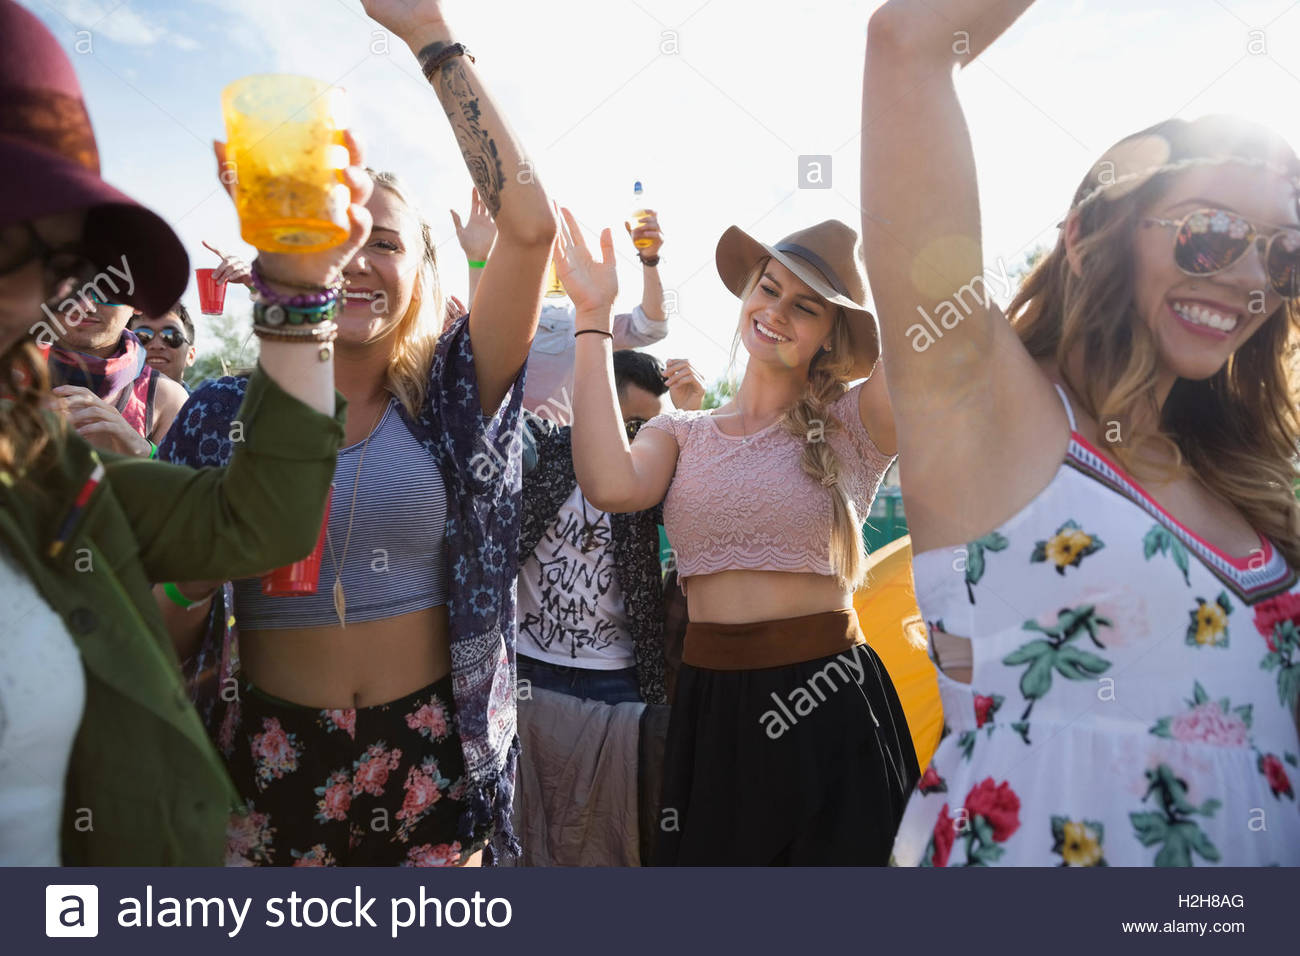 Young crowd dancing at summer music festival - Stock Image